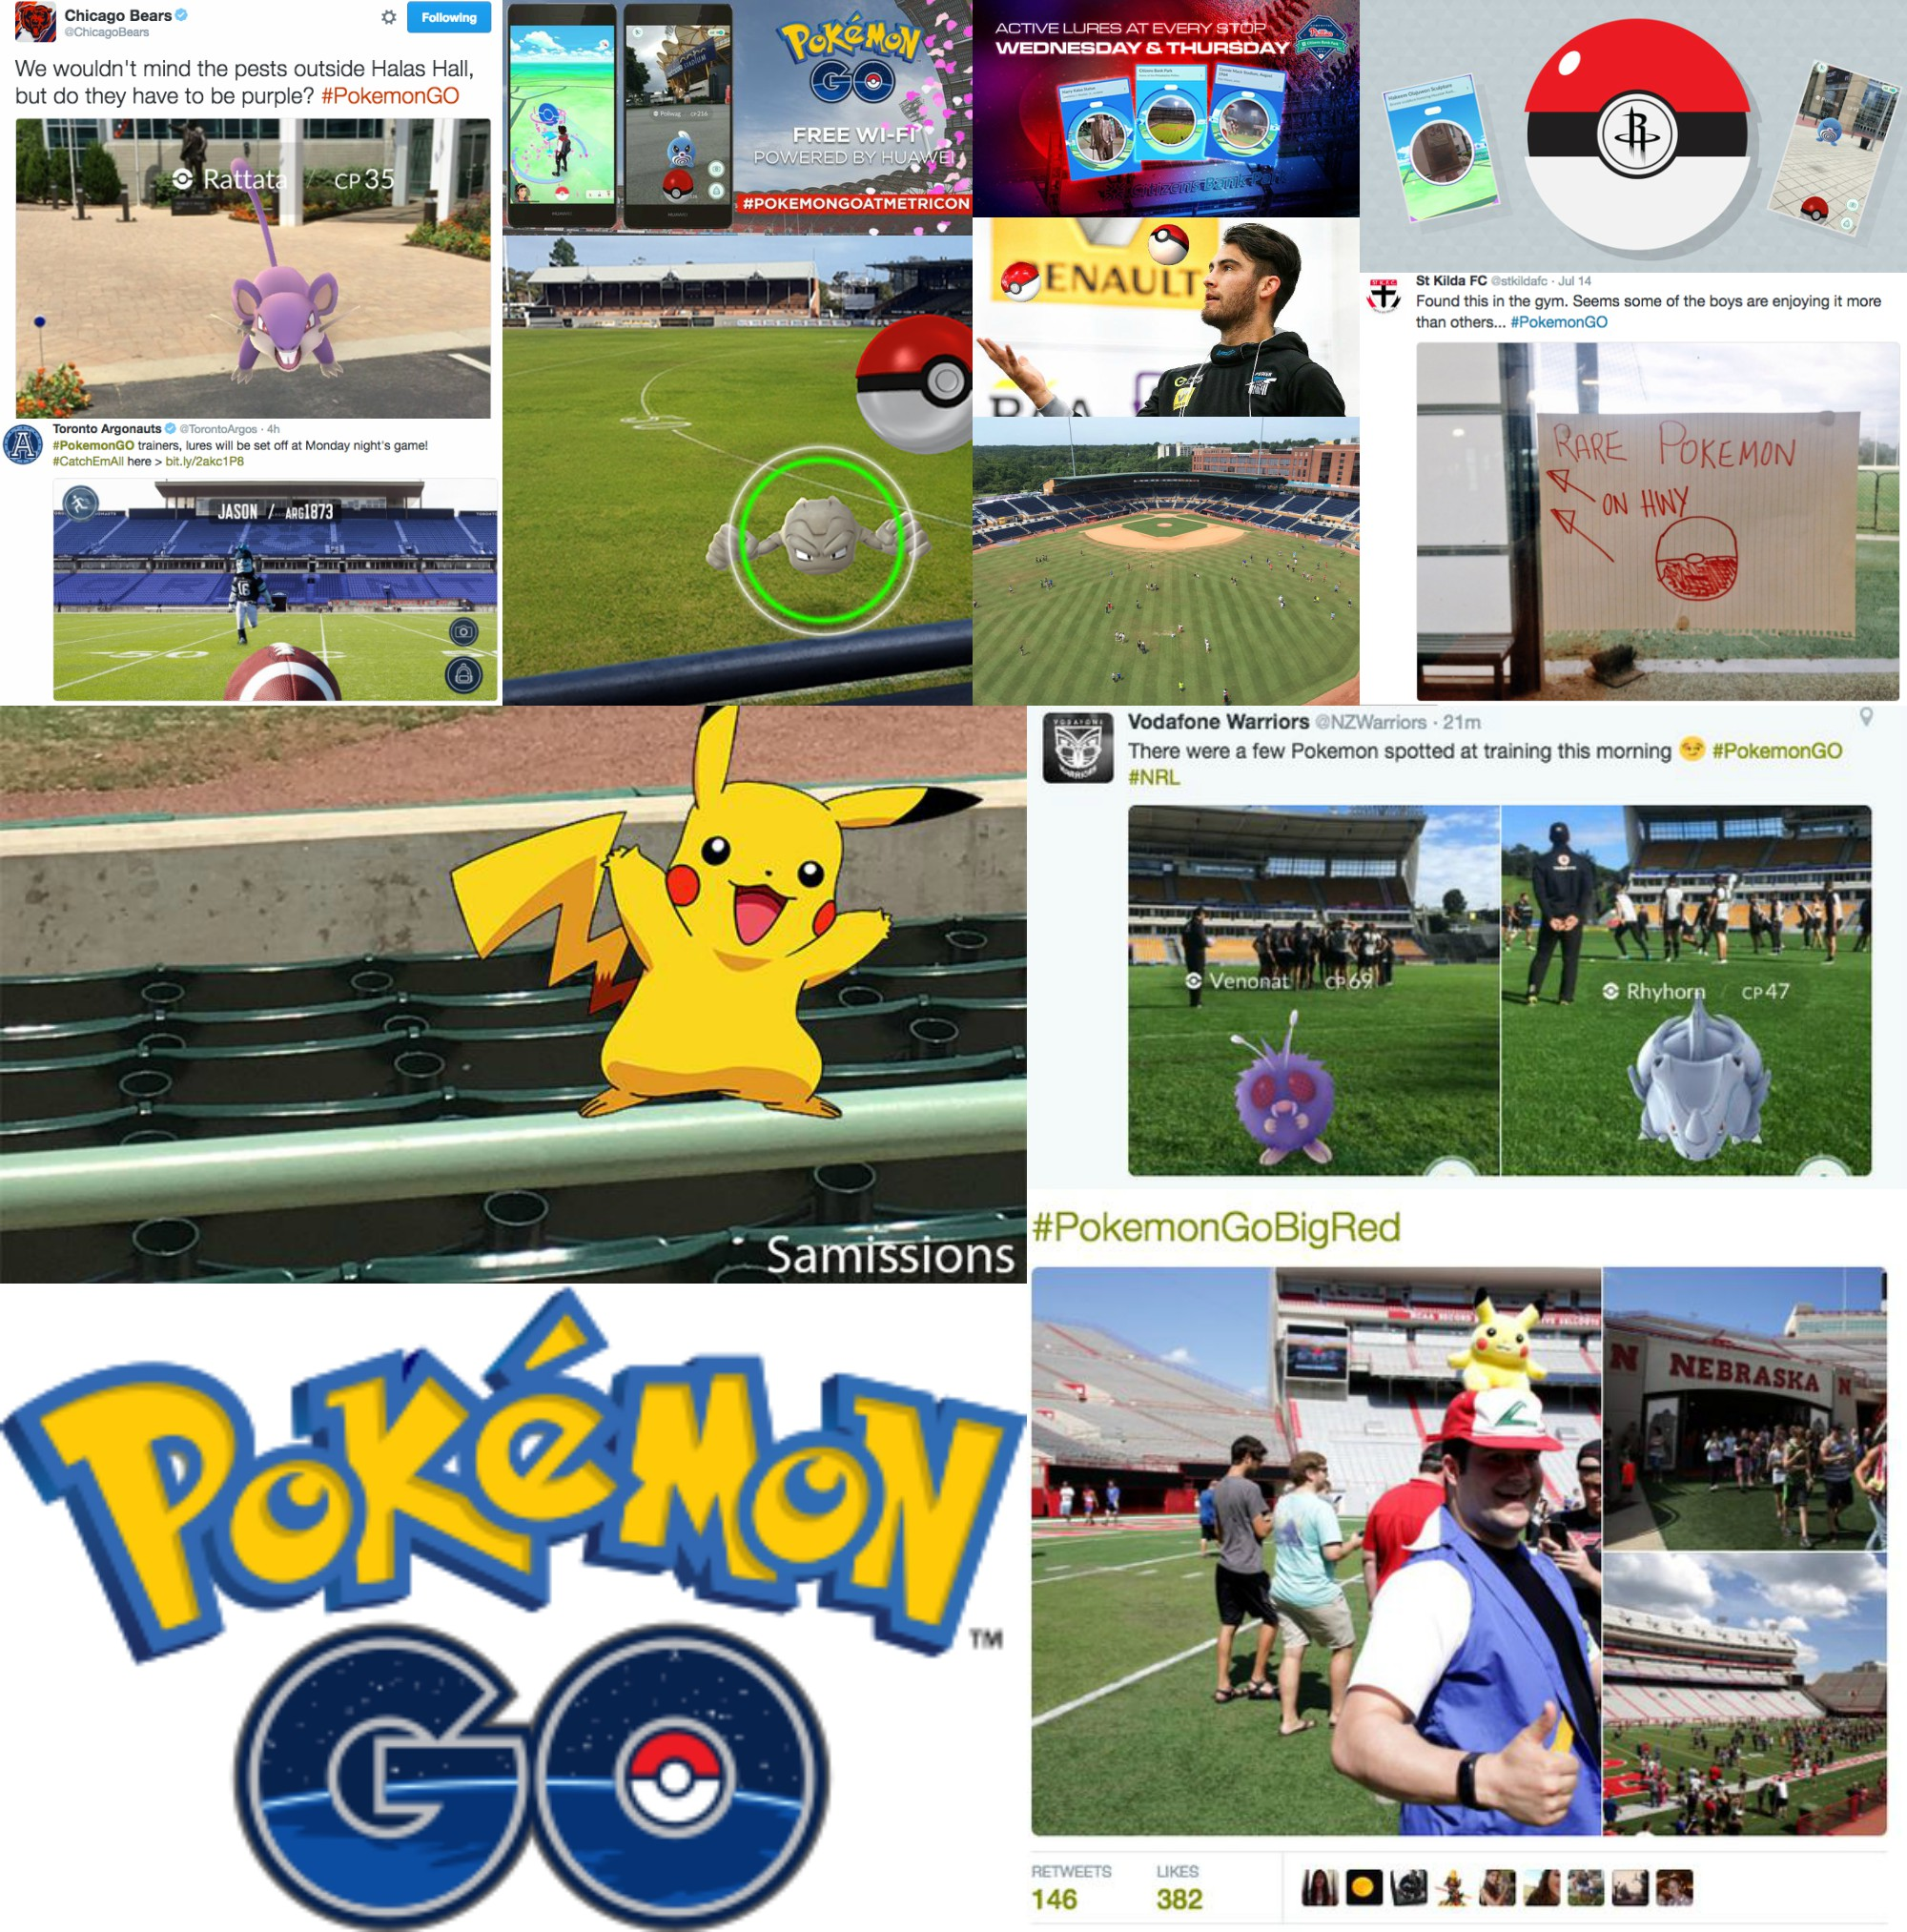 19 cool pokemon go fan engagement examples from sports teams blair